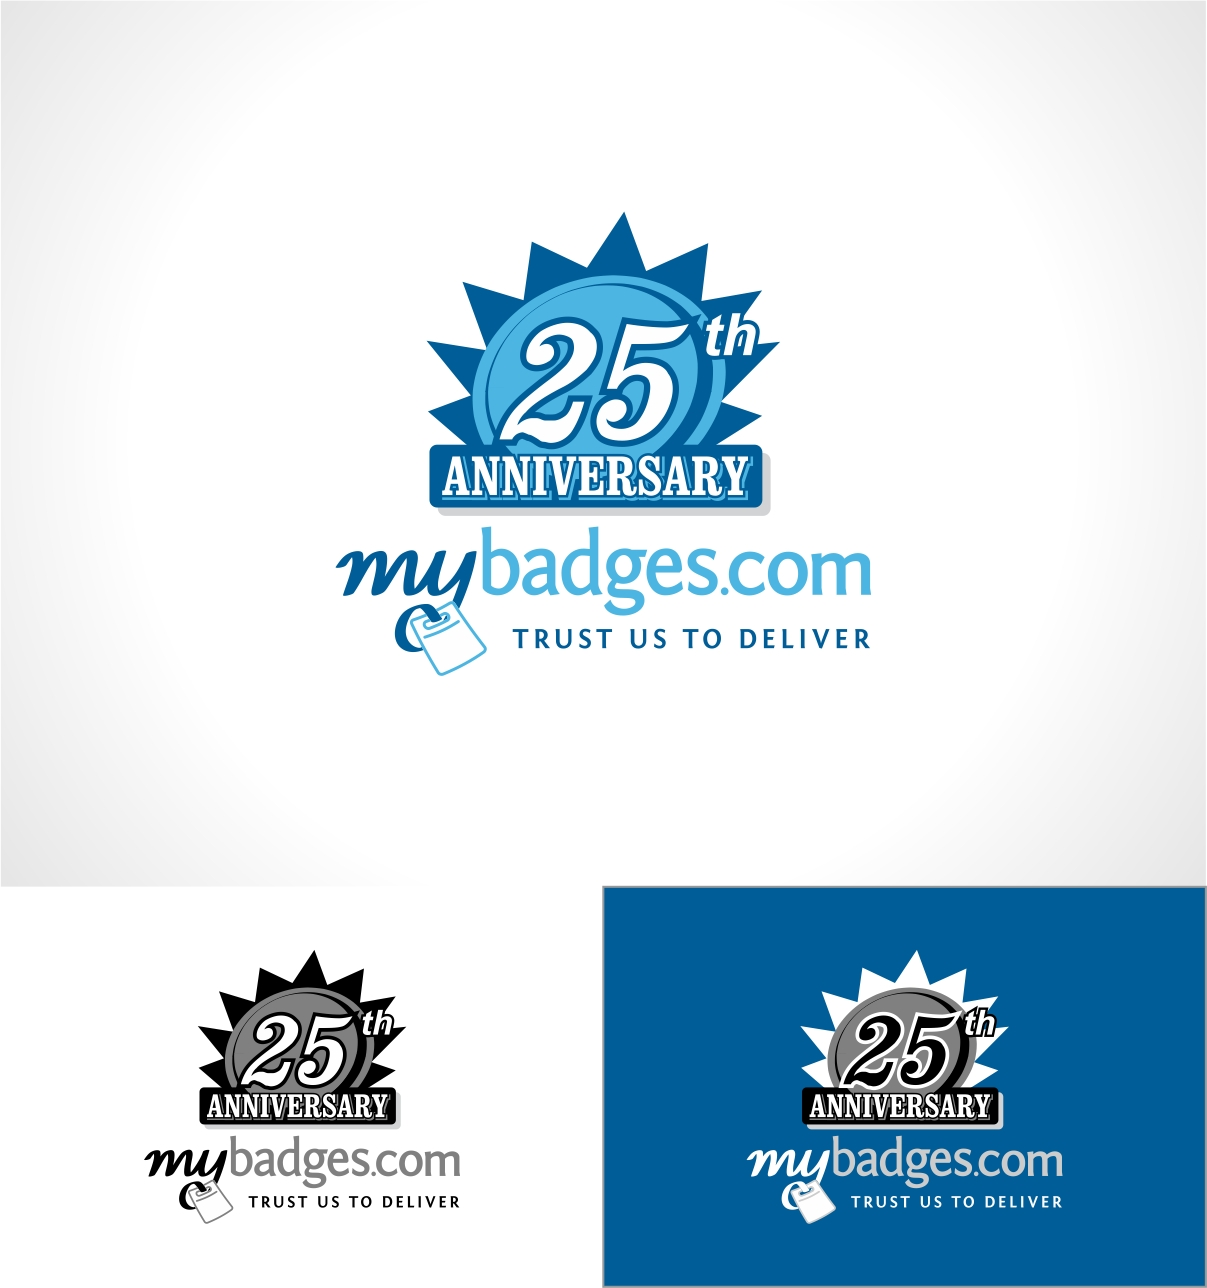 Logo Design by haidu - Entry No. 128 in the Logo Design Contest 25th Anniversary Logo Design Wanted for MyBadges.com.